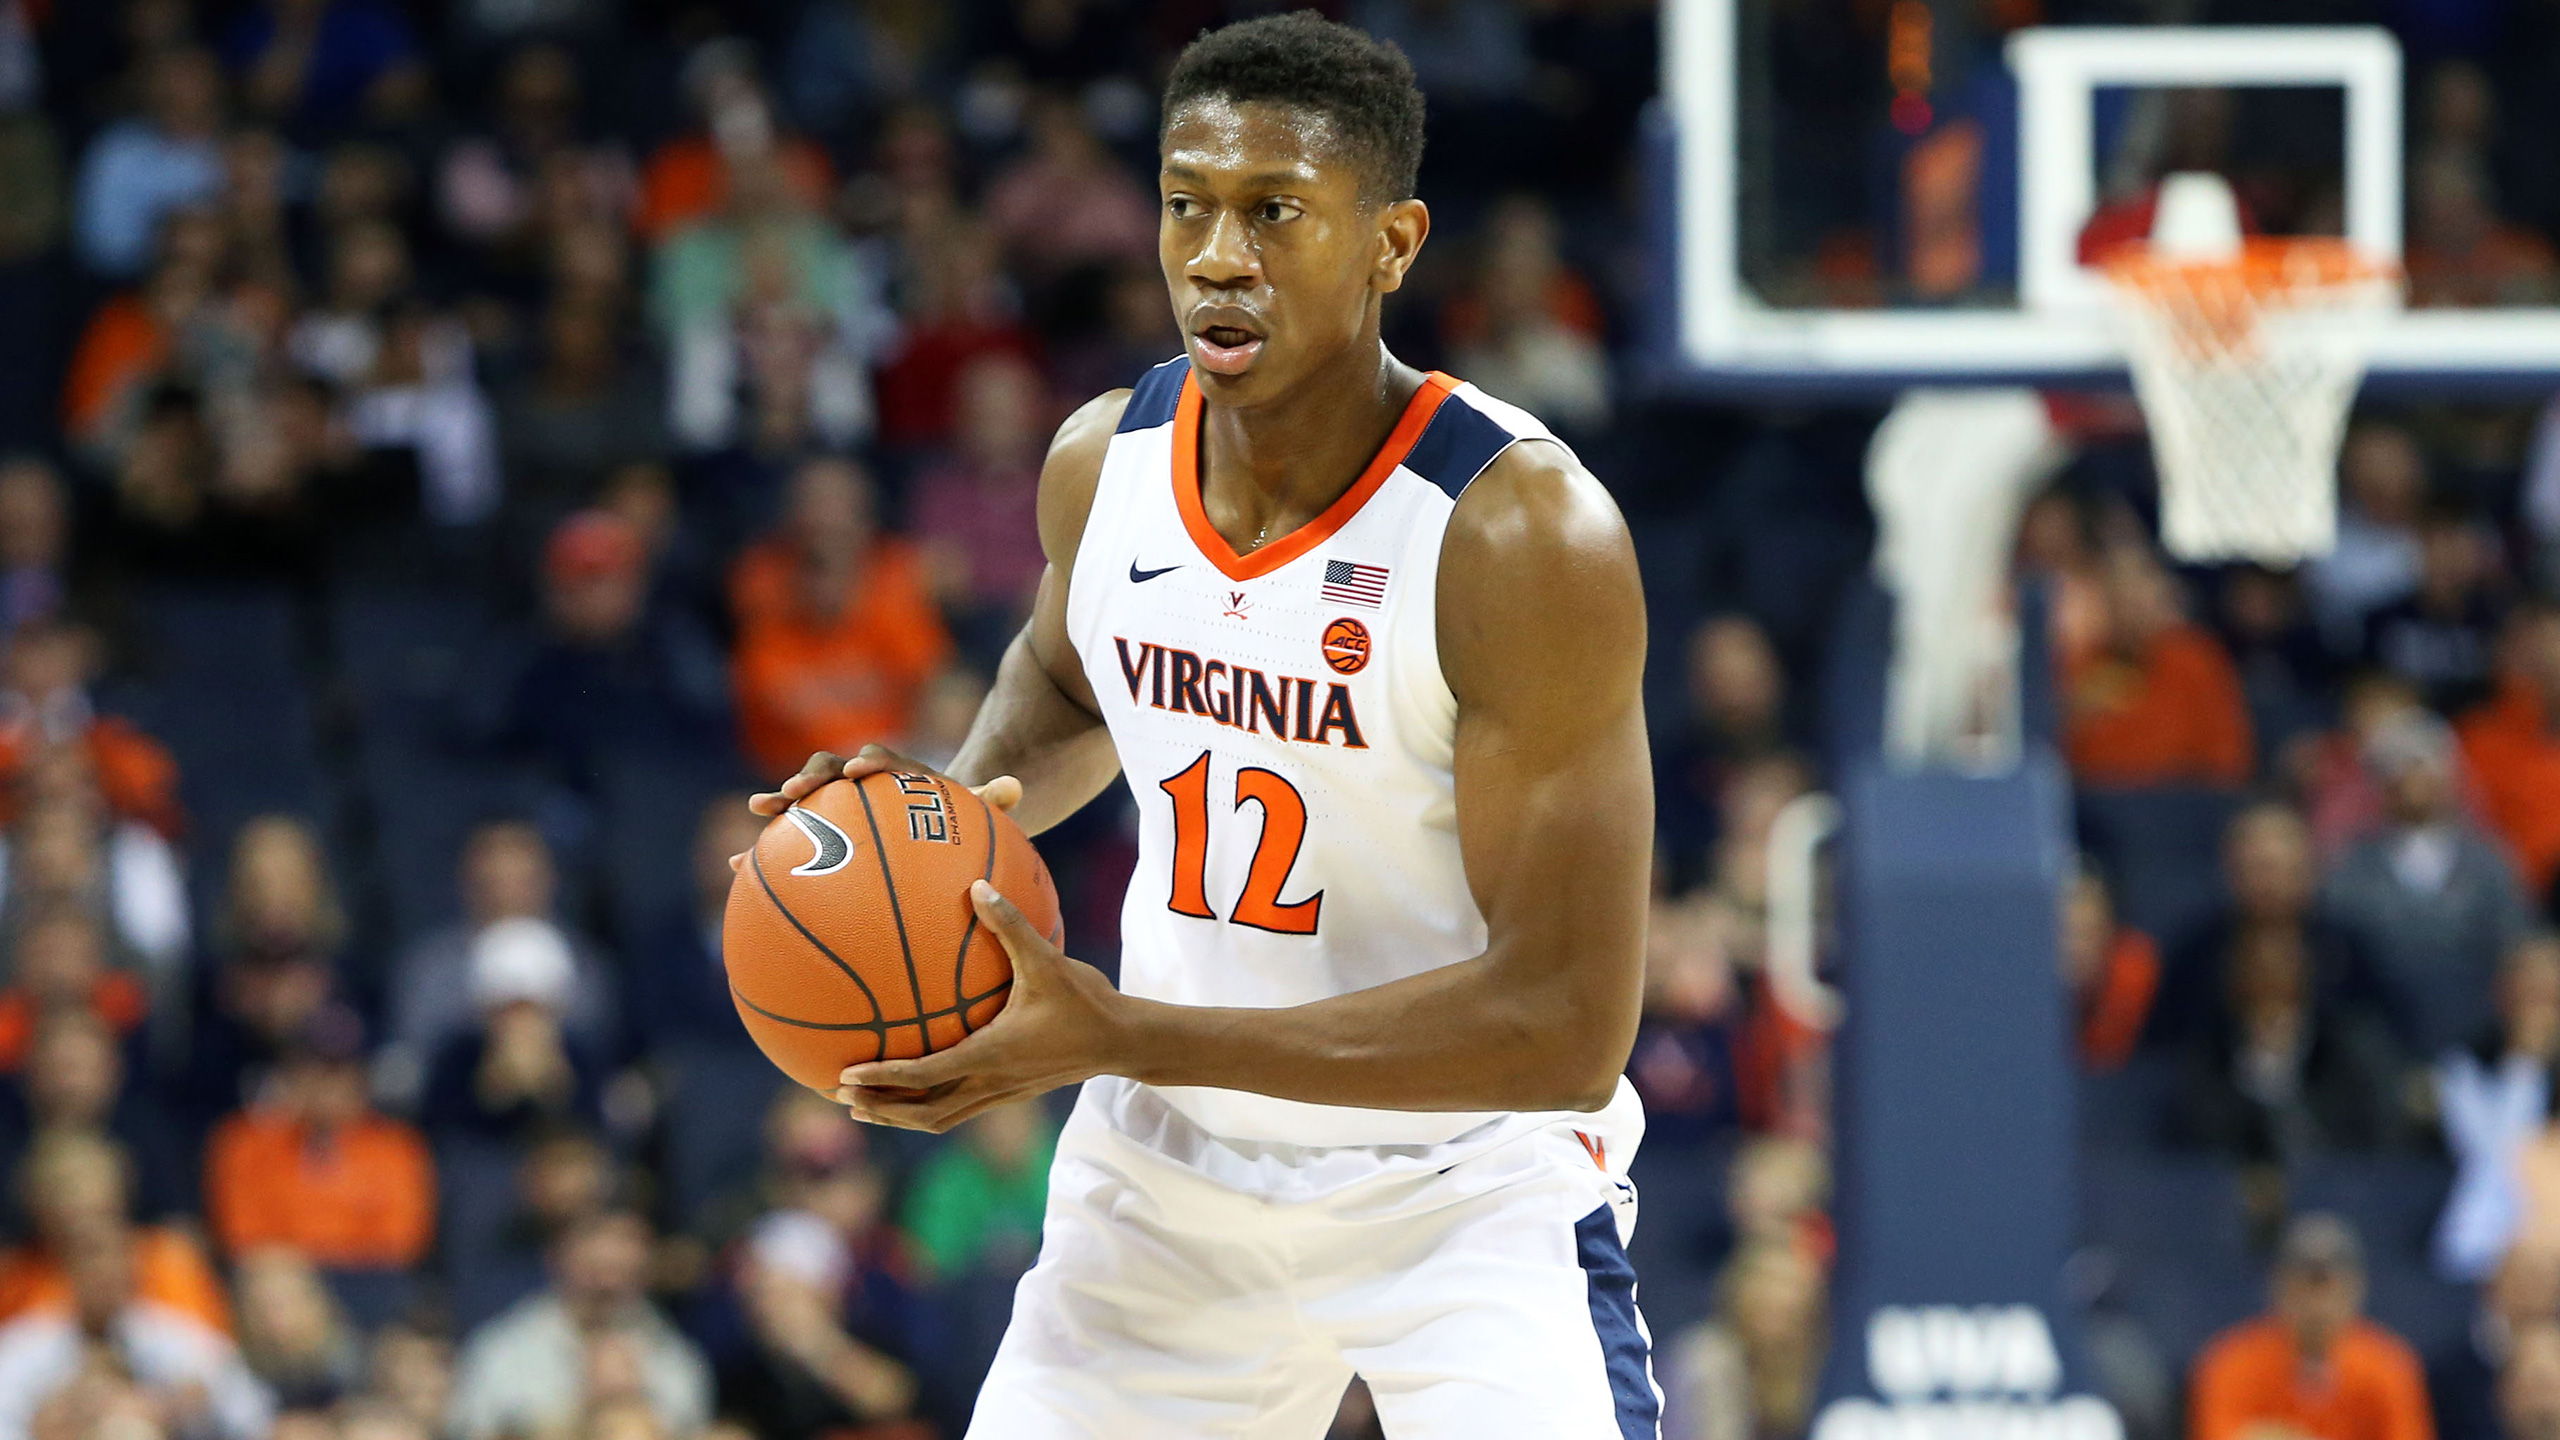 Notre Dame vs. #4 Virginia (M Basketball)